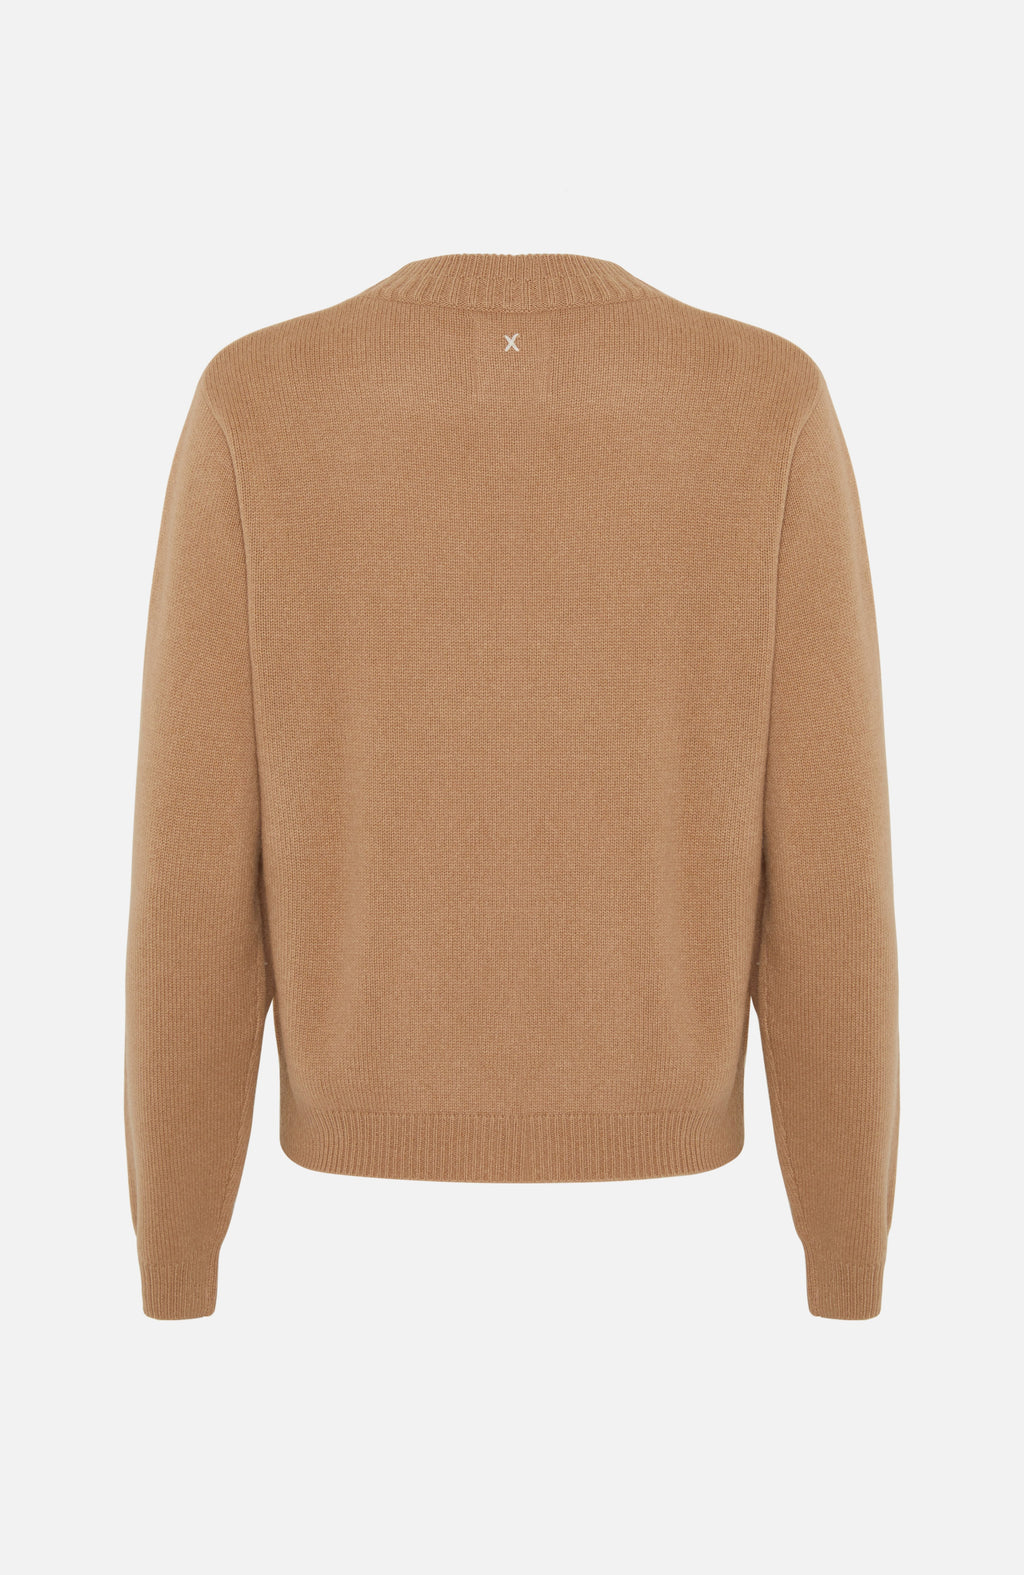 Republic Of Cashmere Crew Neck Camel Sweater